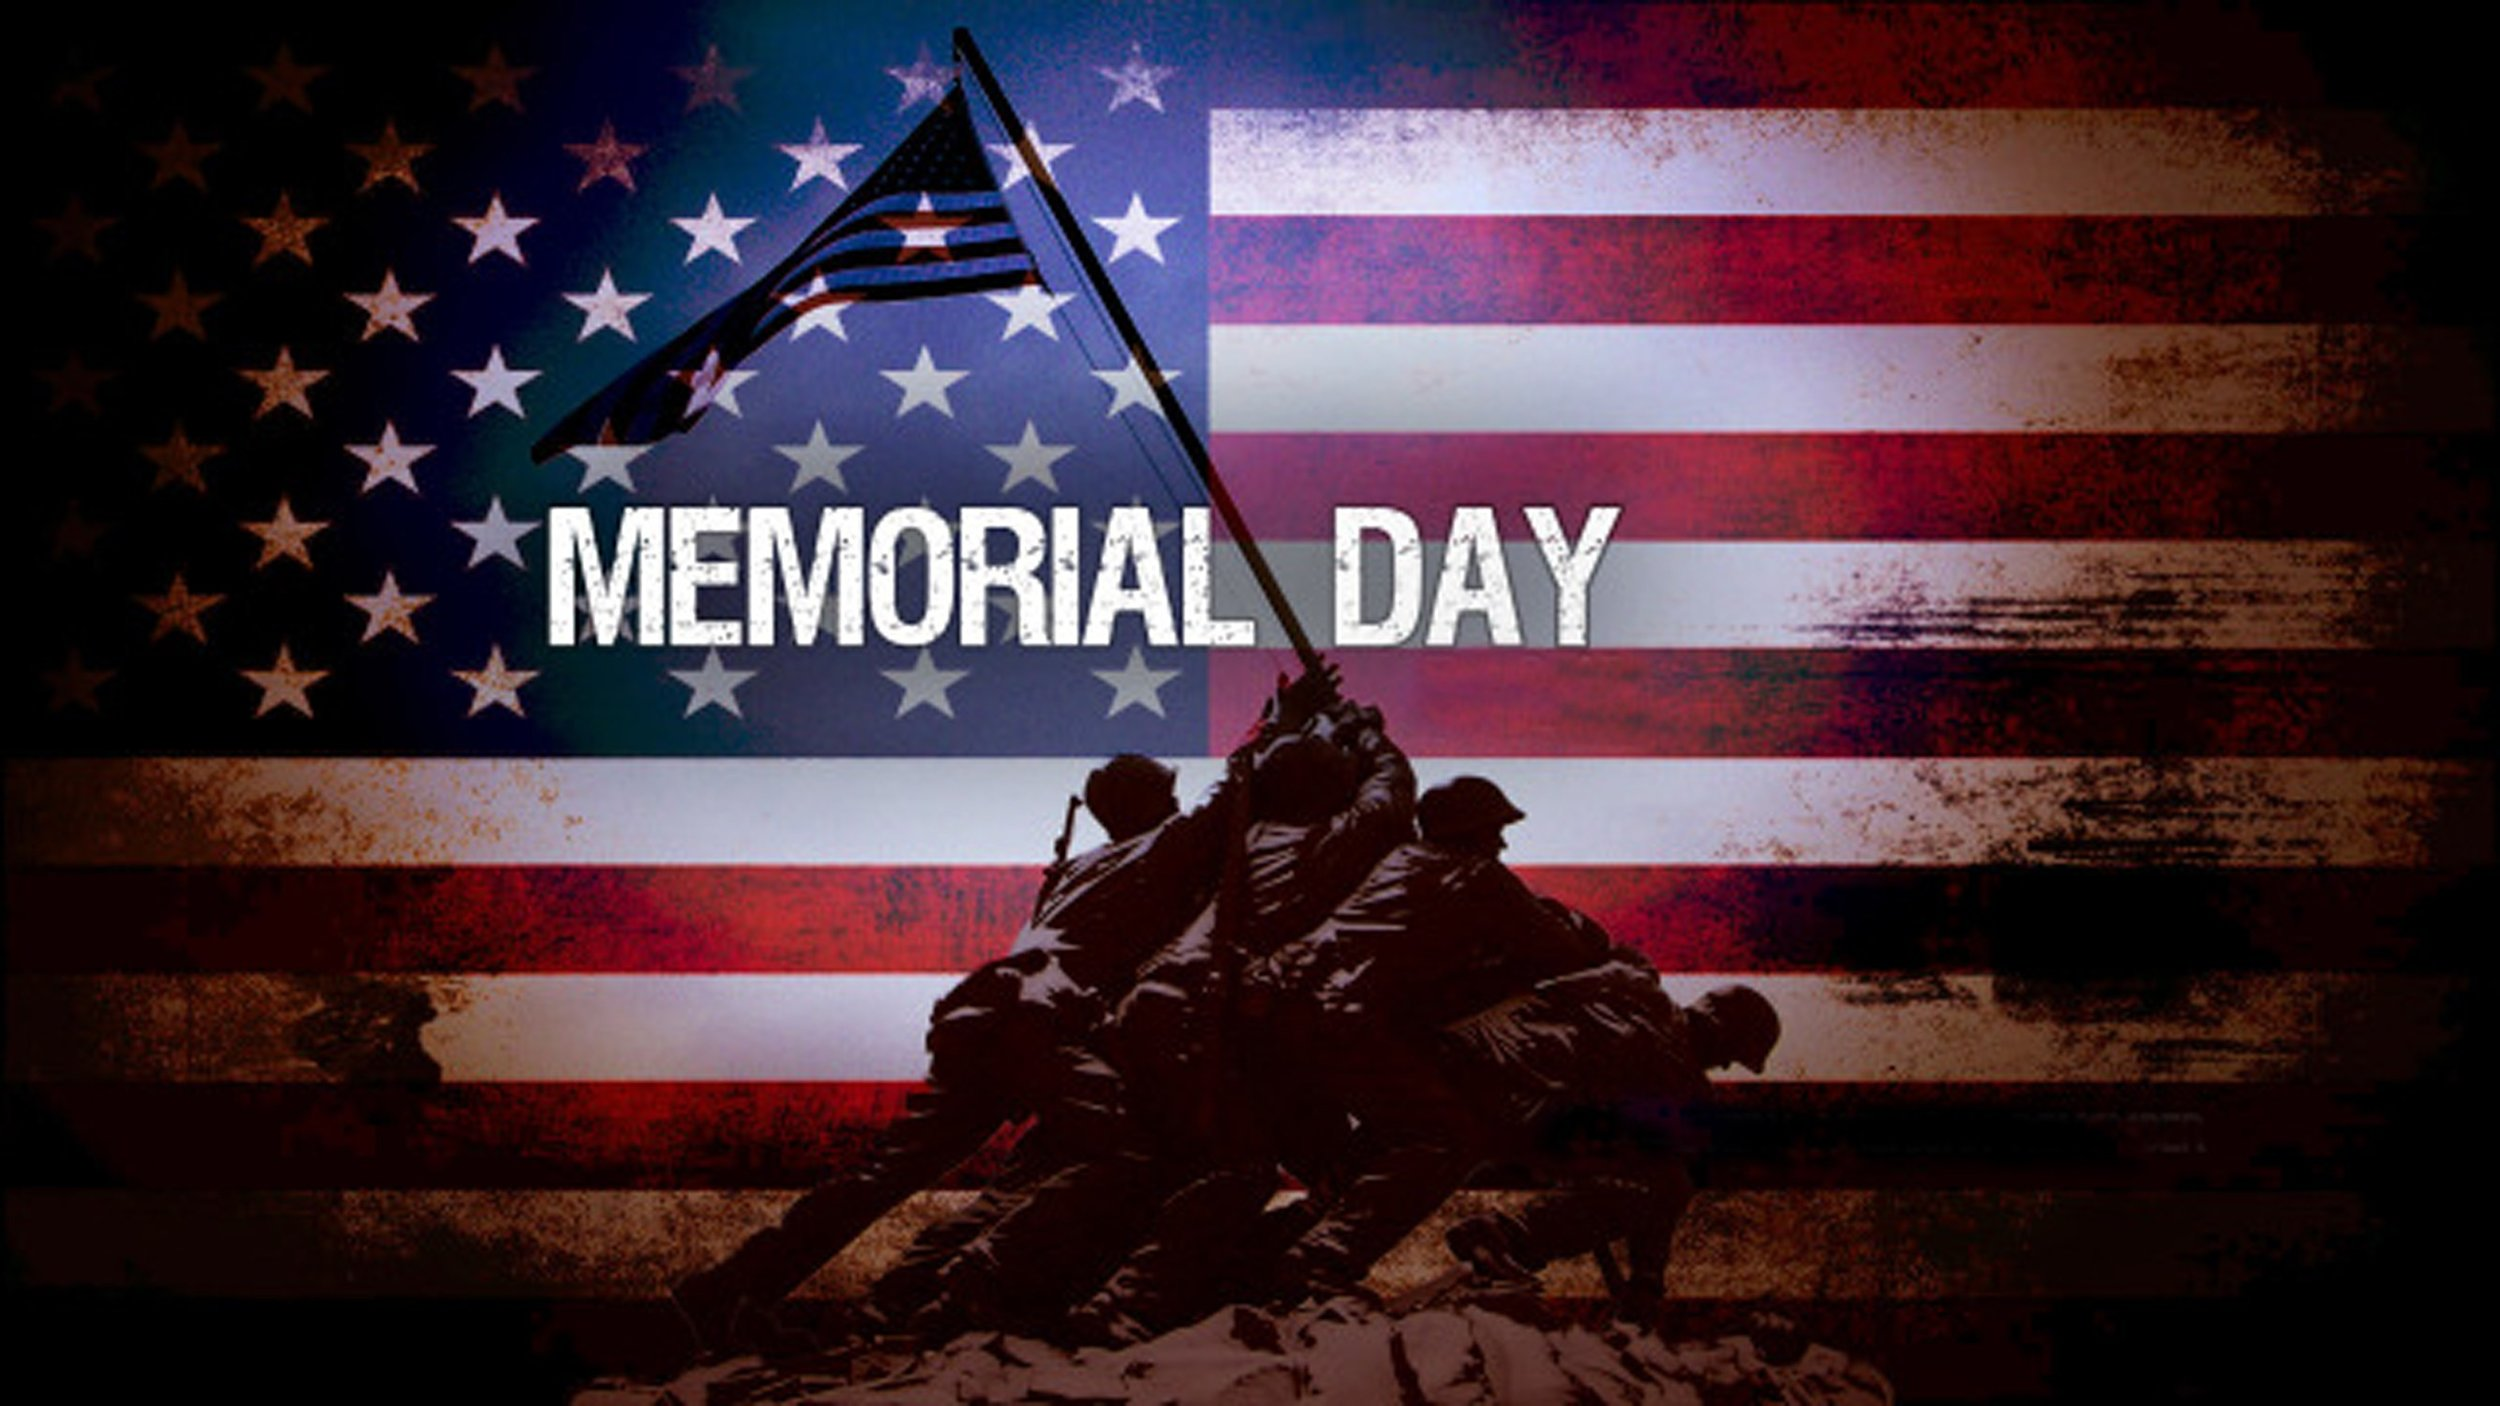 Memorial-Day-Pictures-Images.jpg